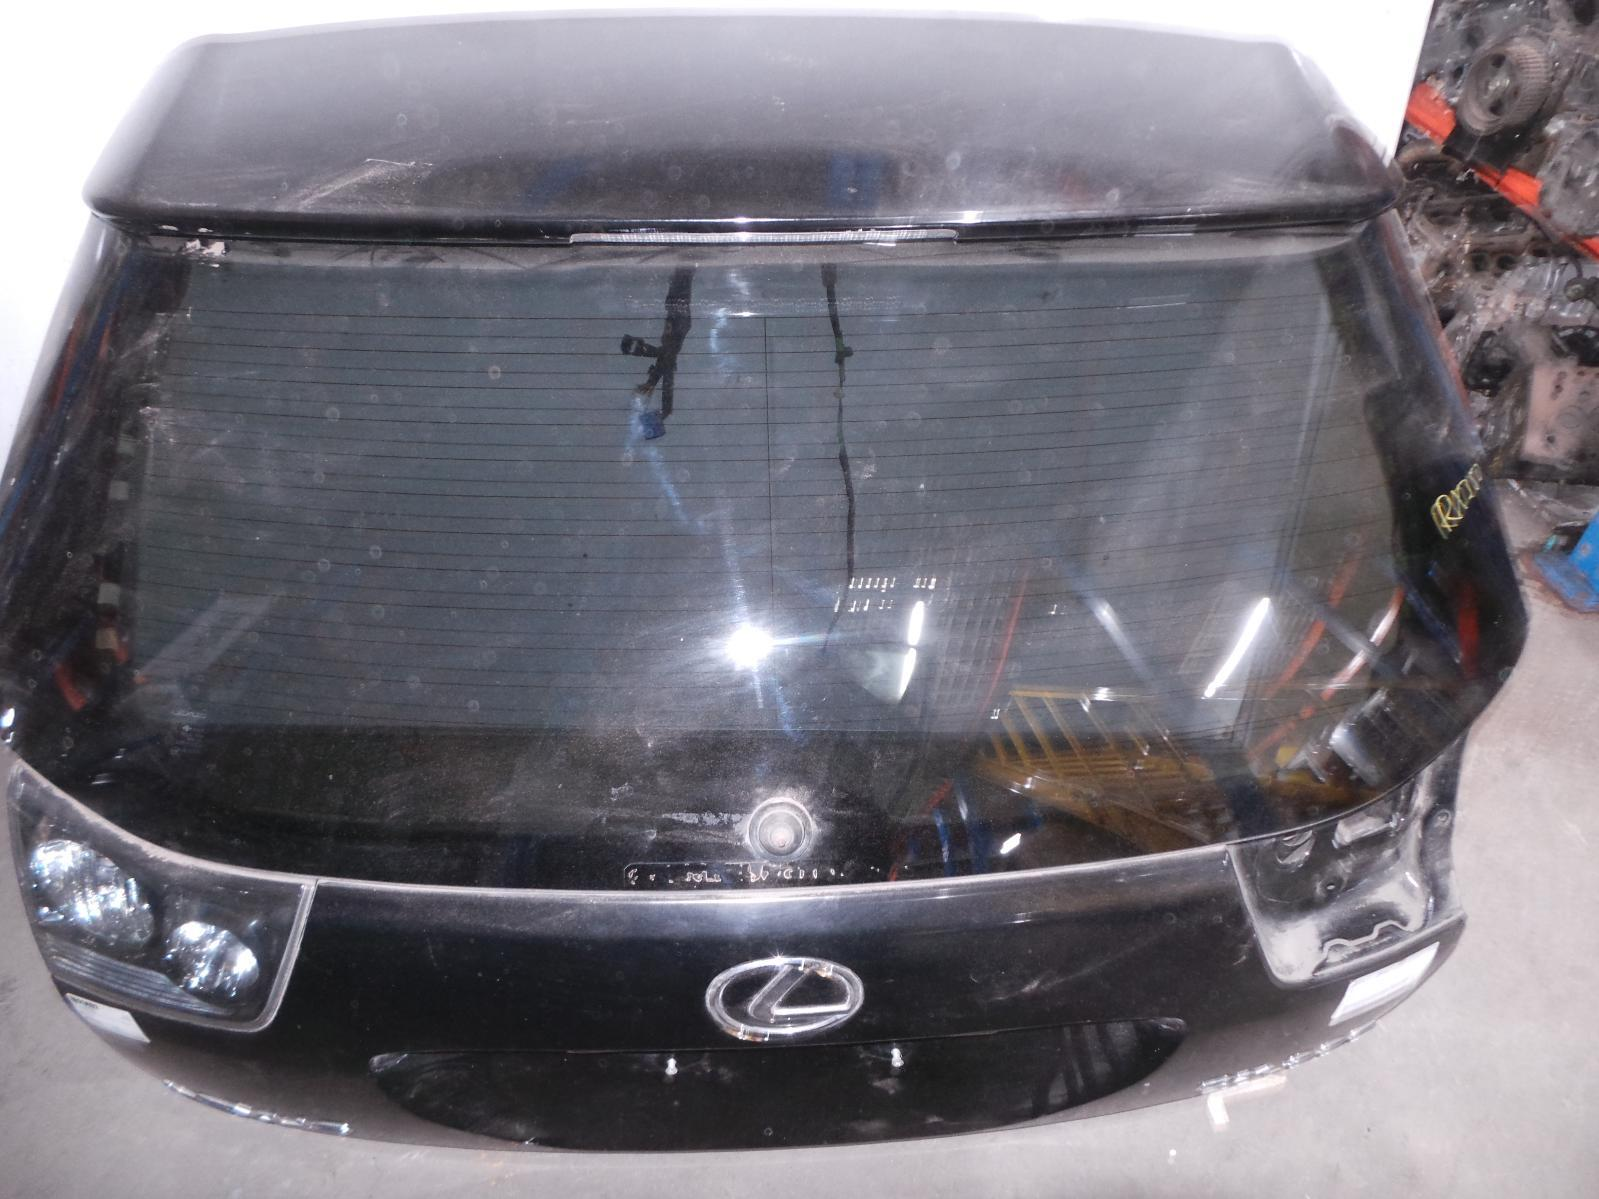 LEXUS RX330, Bootlid/Tailgate, TAILGATE, NON POWER LIFTGATE TYPE, 04/03-12/05